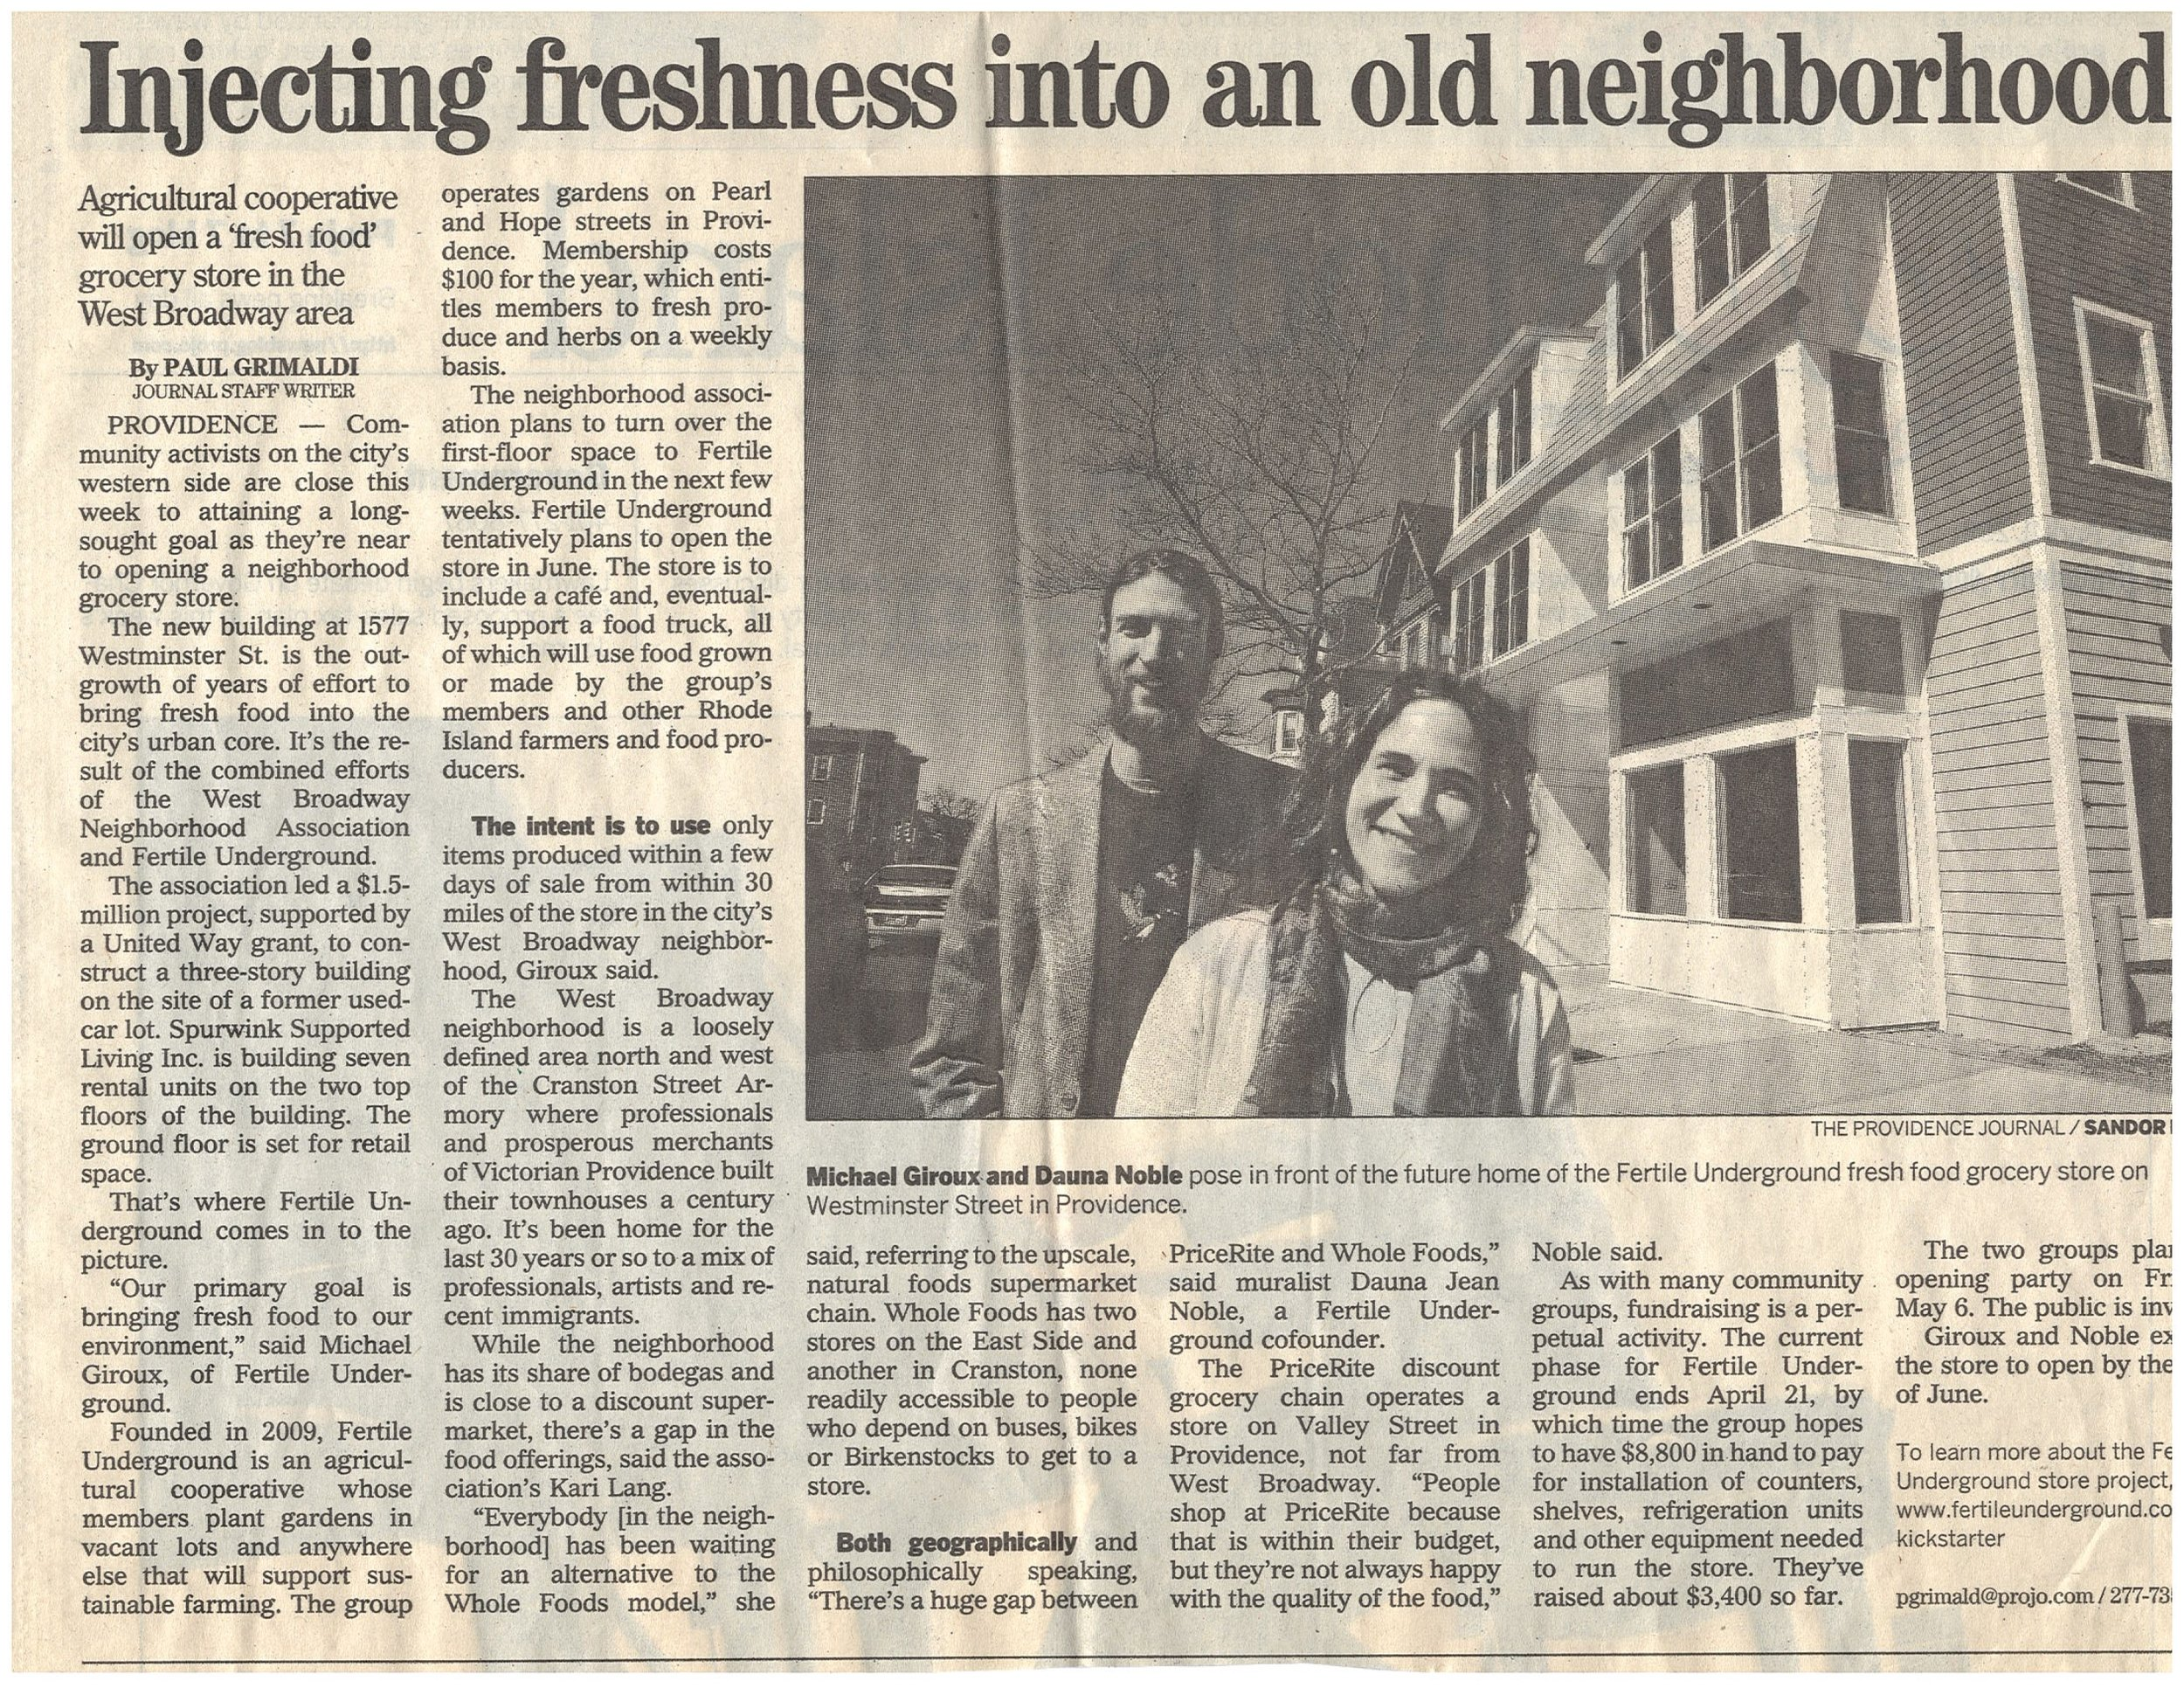 Providence Journal article, spring 2011